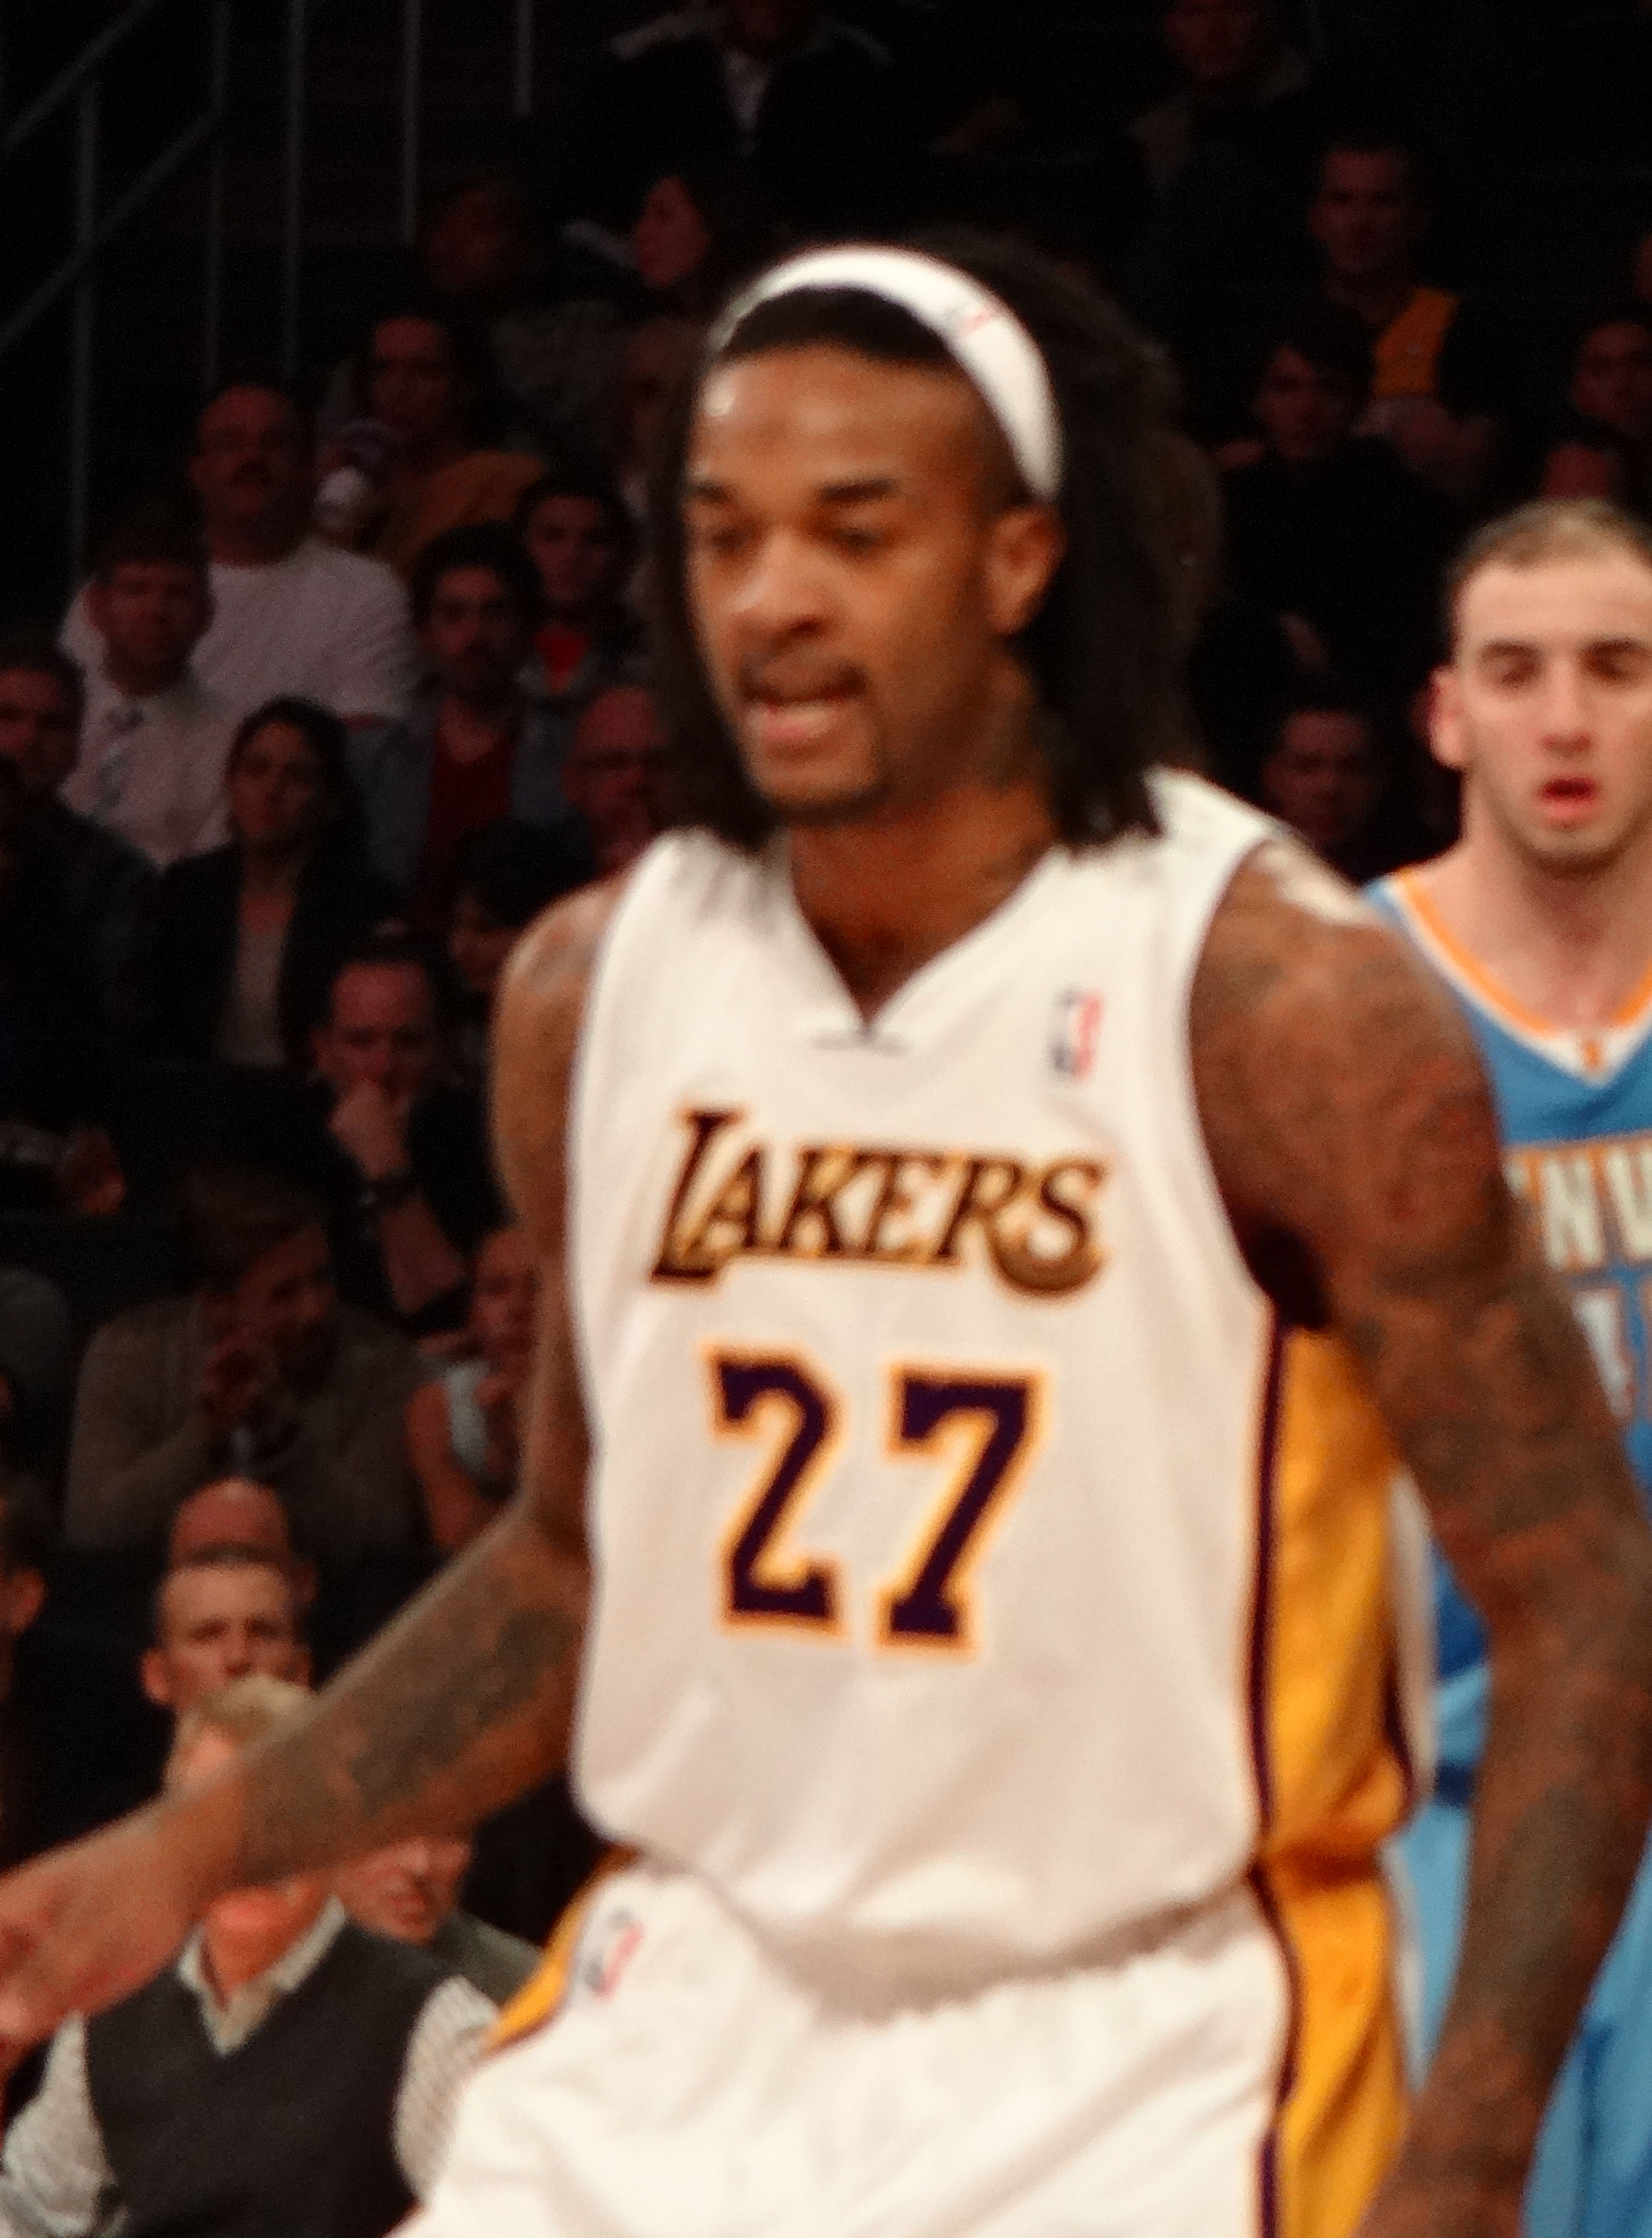 premium selection 1a1b0 afdf5 Jordan Hill (basketball) - Wikipedia